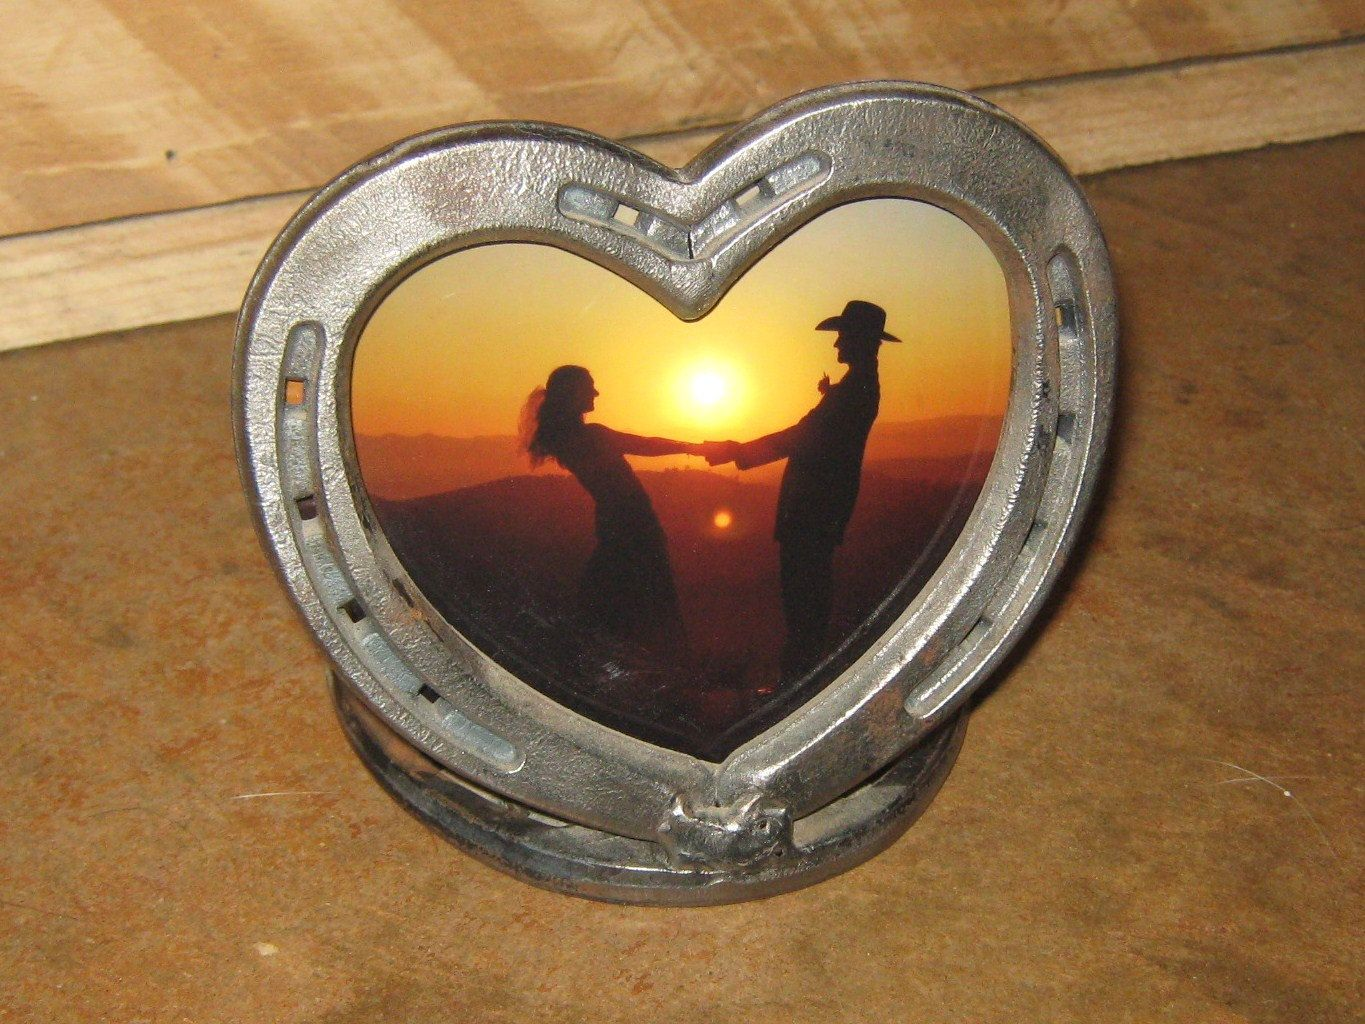 Horseshoe heart picture frame by customcowboy on etsy 2600 horseshoe heart picture frame by customcowboy on etsy 2600 jeuxipadfo Image collections